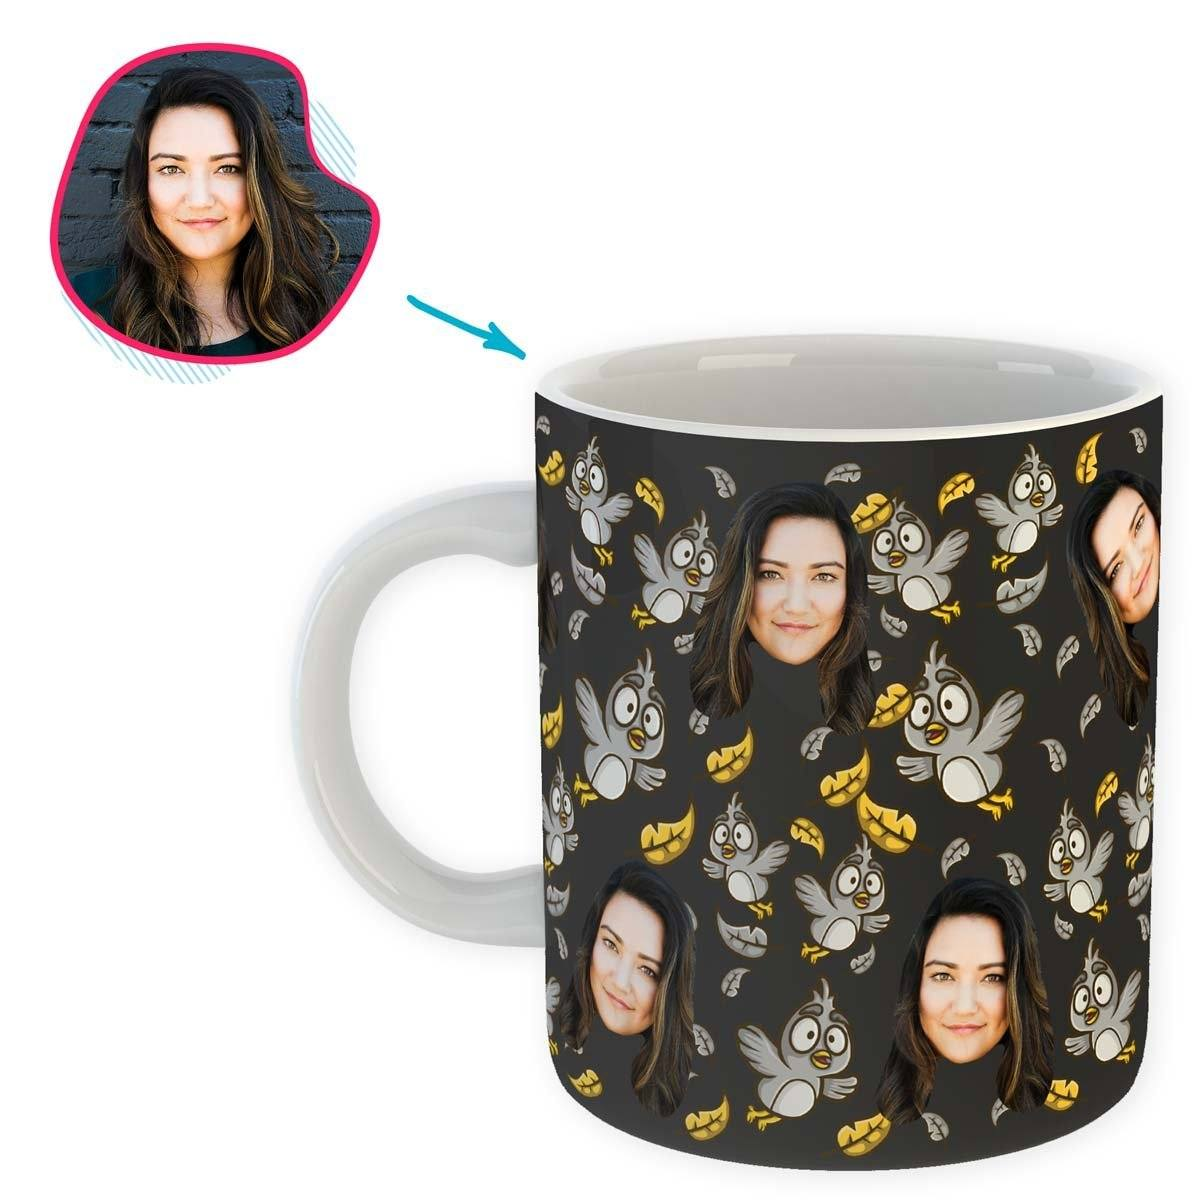 dark Bird mug personalized with photo of face printed on it